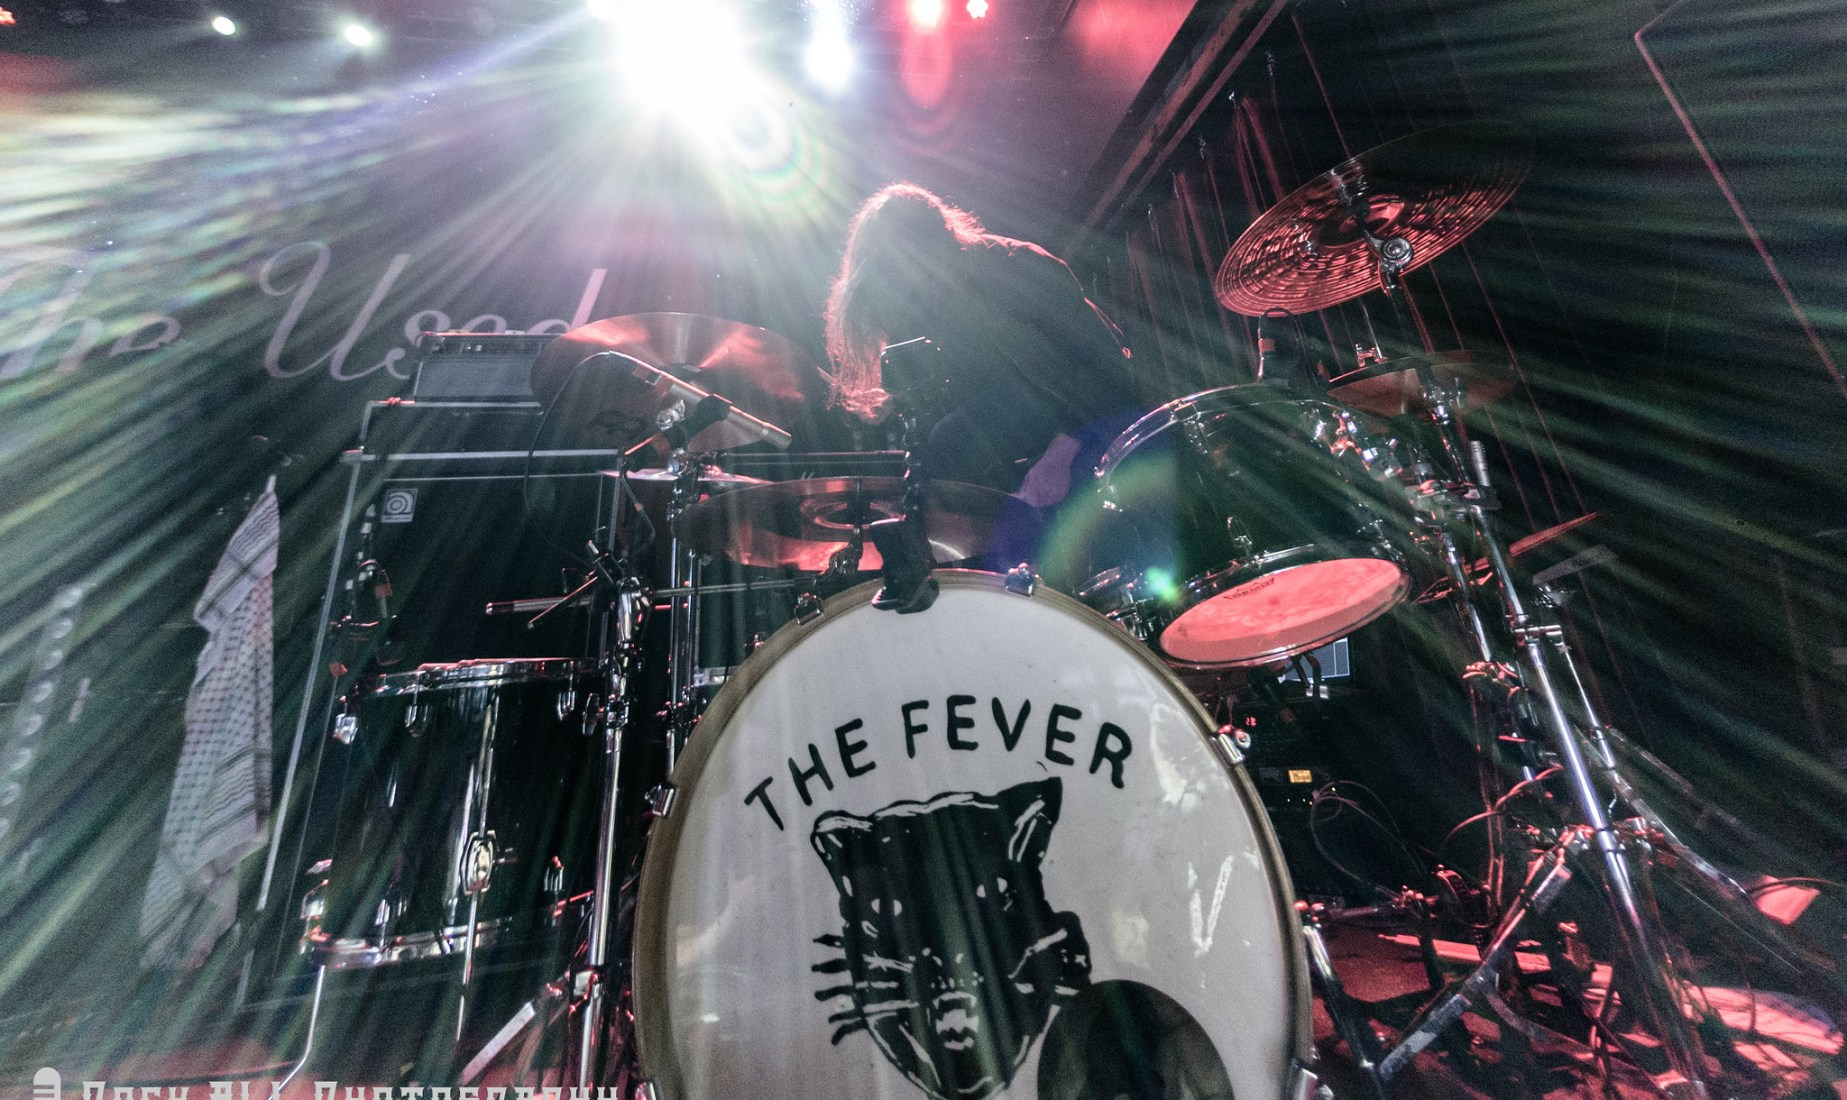 The Fever 333 - Louisville, KY - Mercury Ballroom - 5/22/18